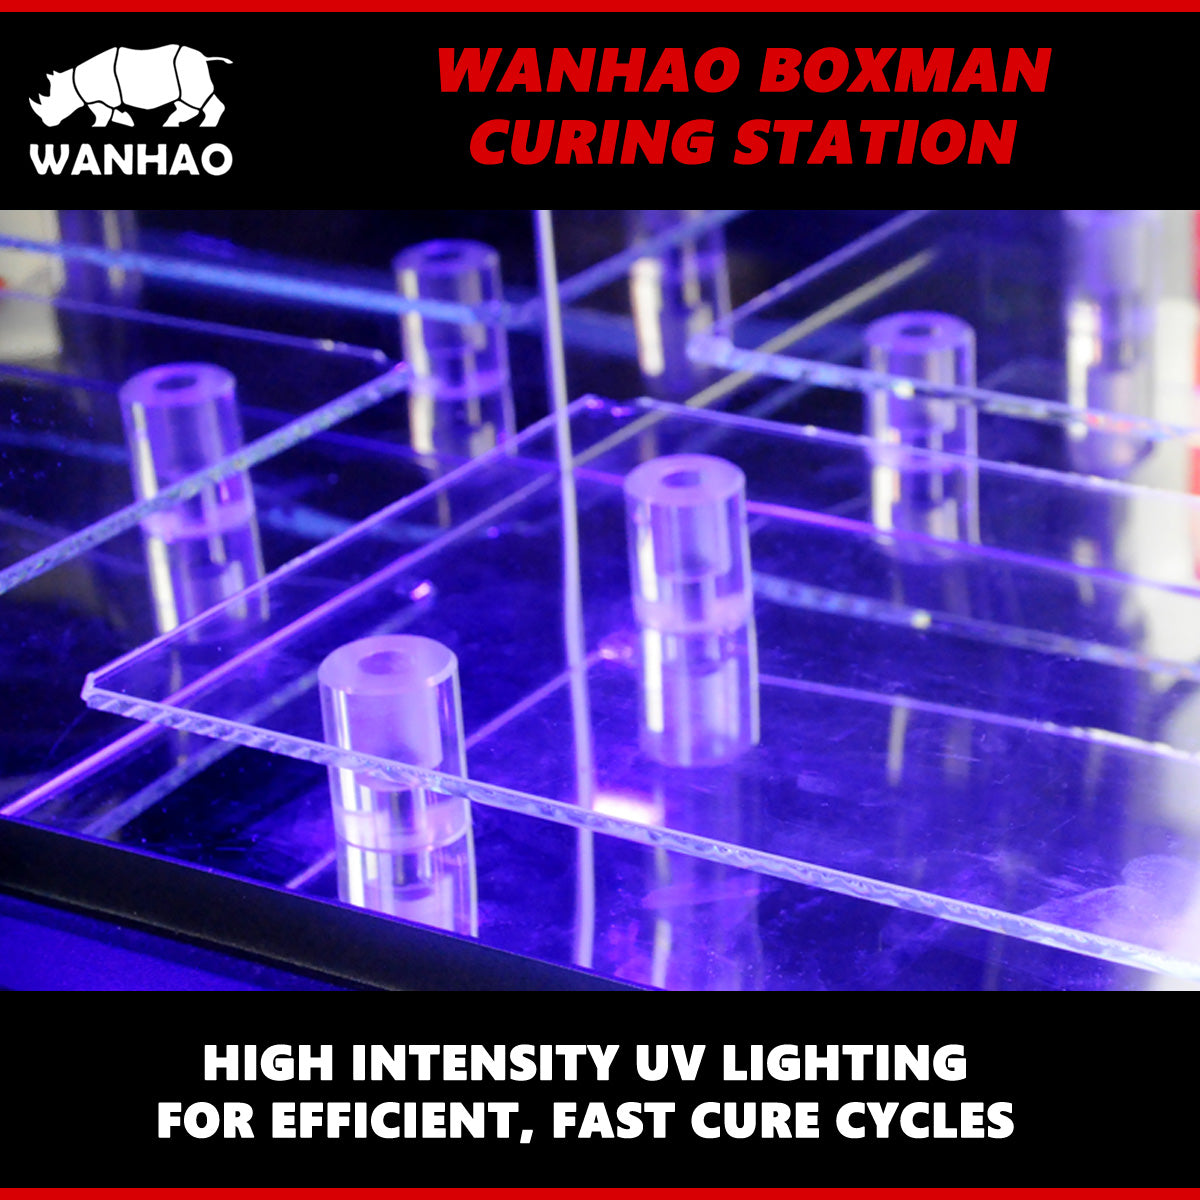 Wanhao Boxman Curing Station – Wanhao University Store